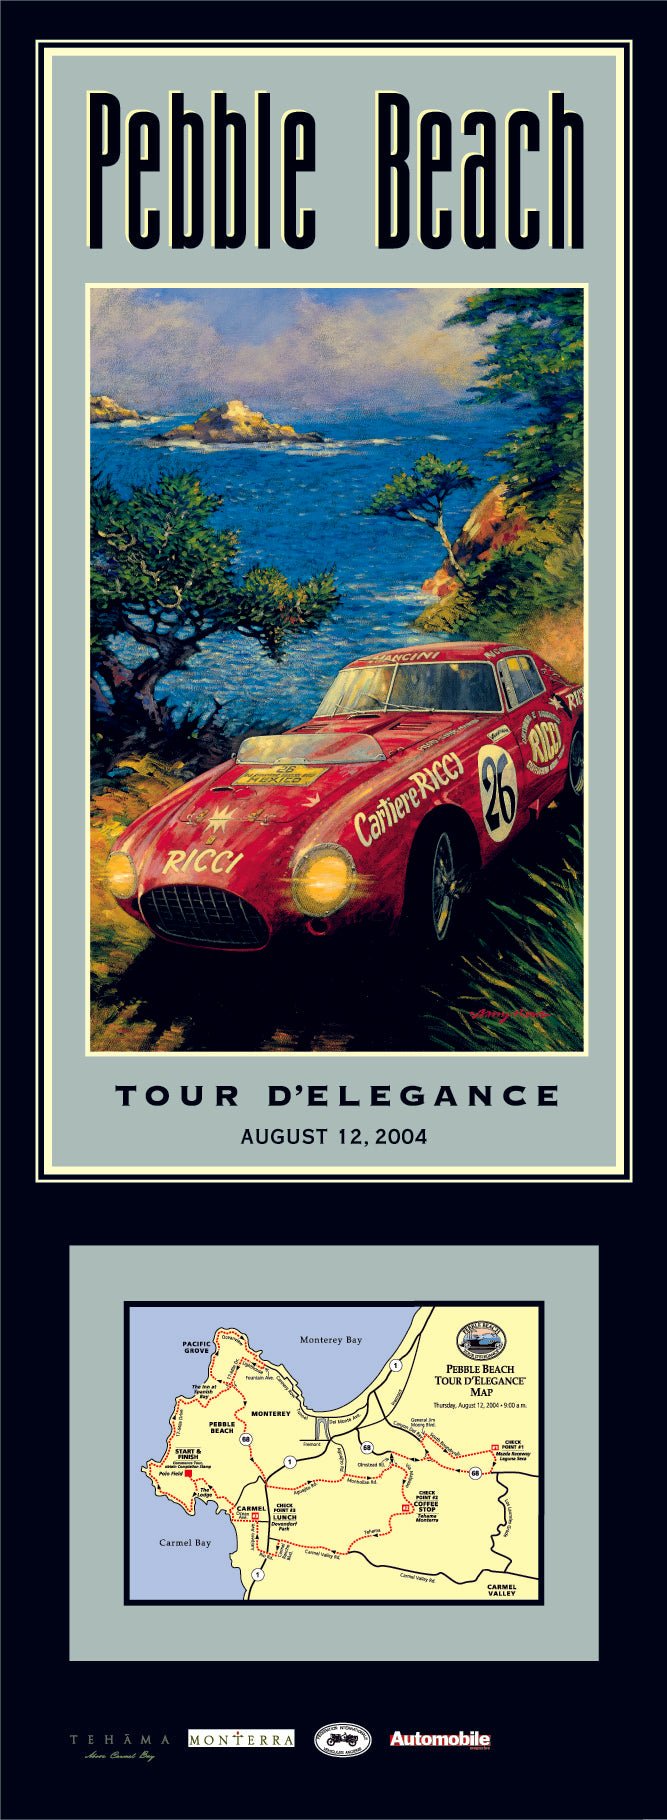 2004 Pebble Beach Tour d'Elegance Poster